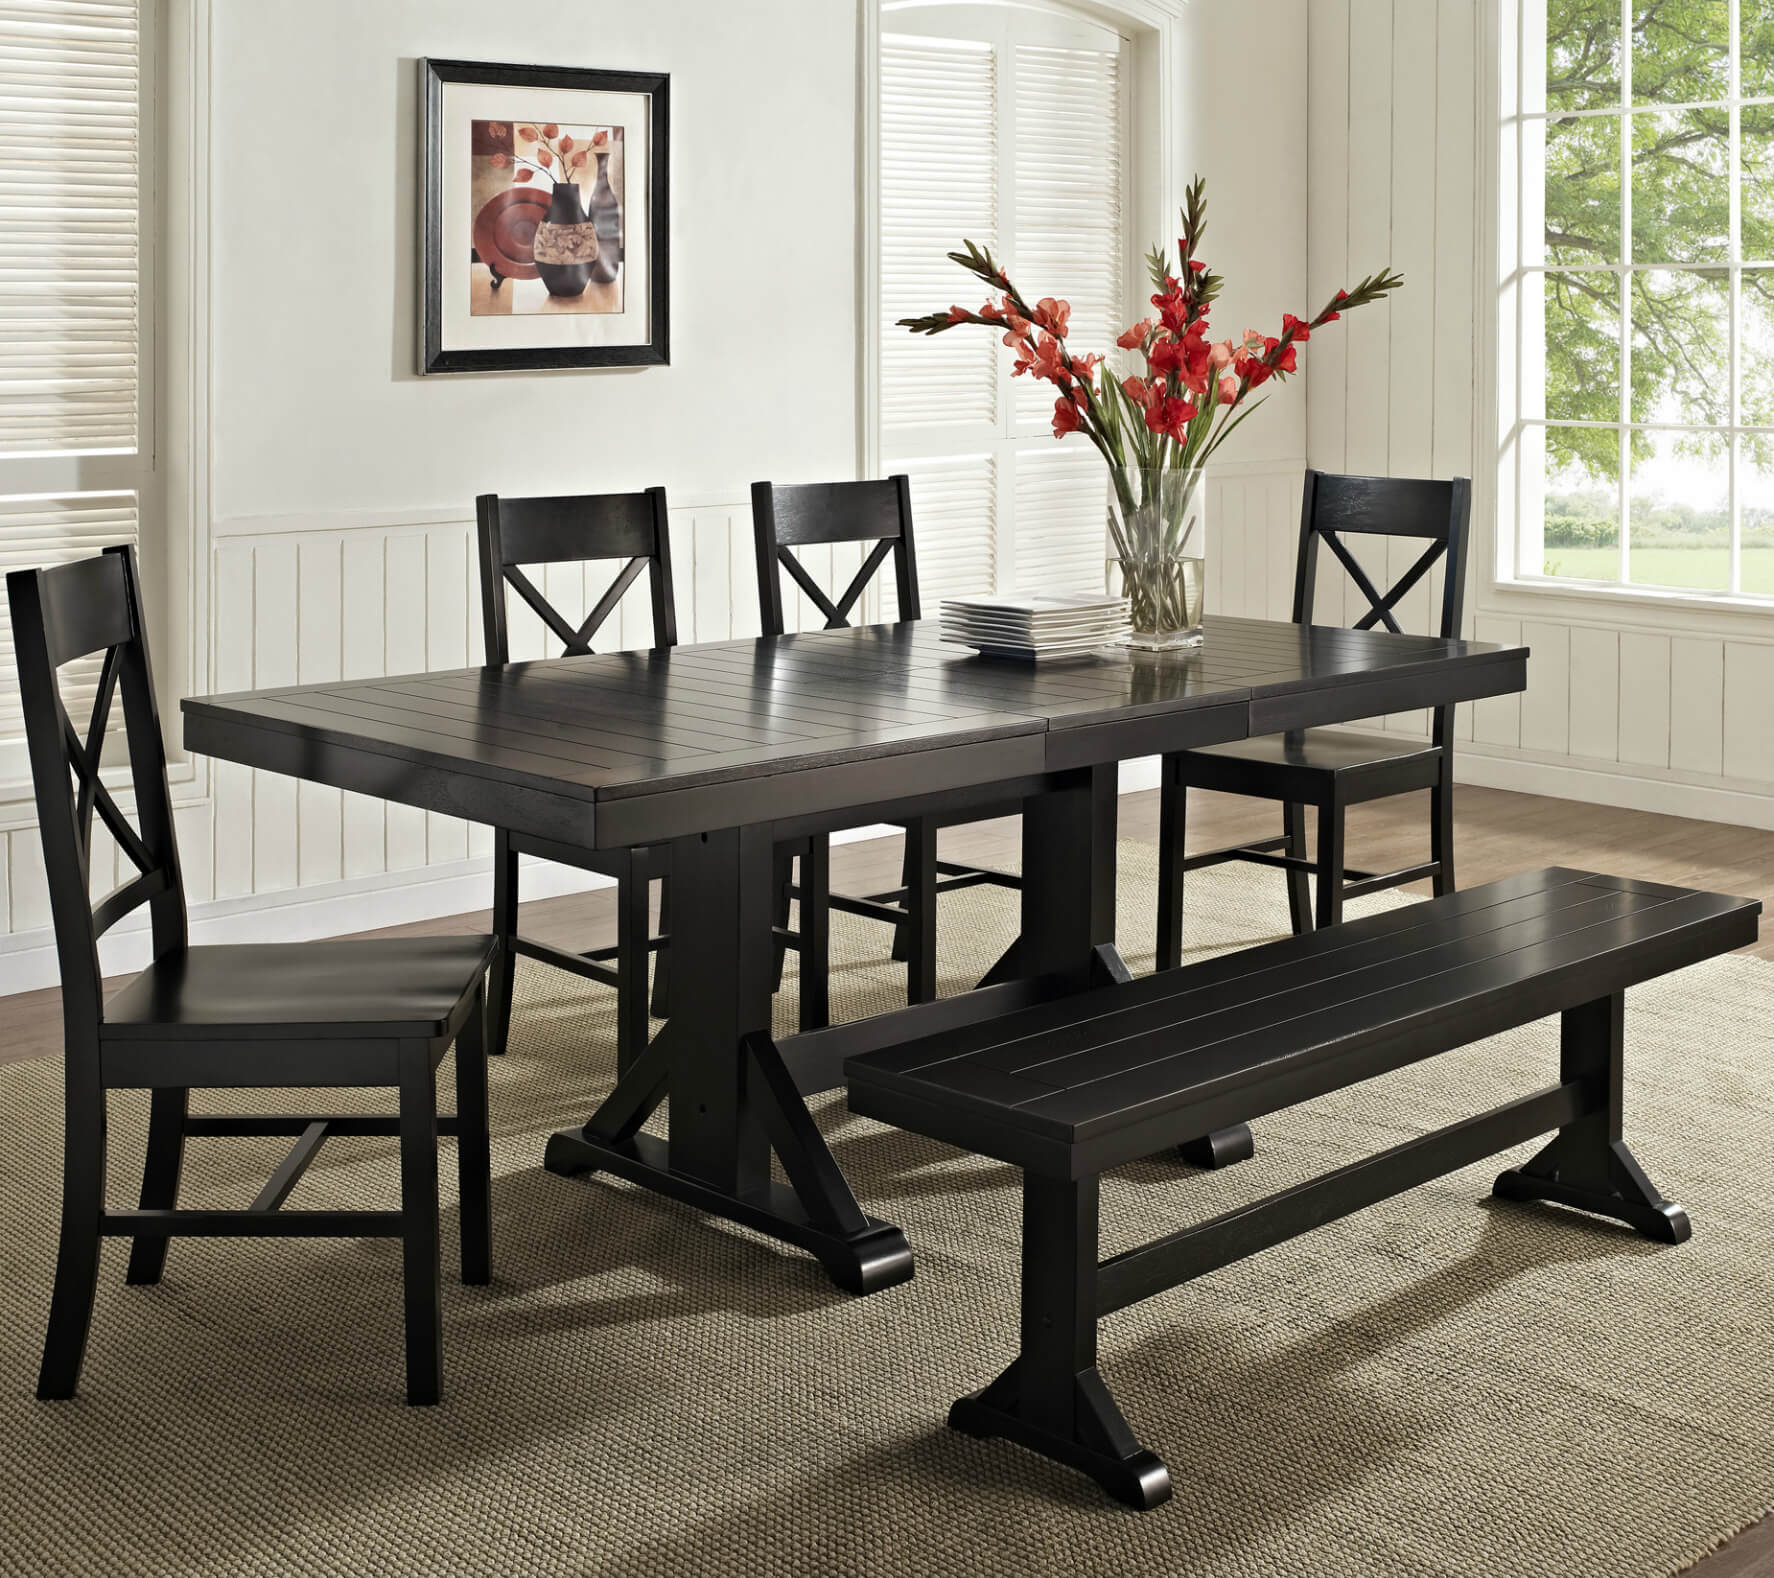 kitchen table set with bench cabinets makeover 26 dining room sets big and small seating 2019 here s a great cottage style while it dark finish